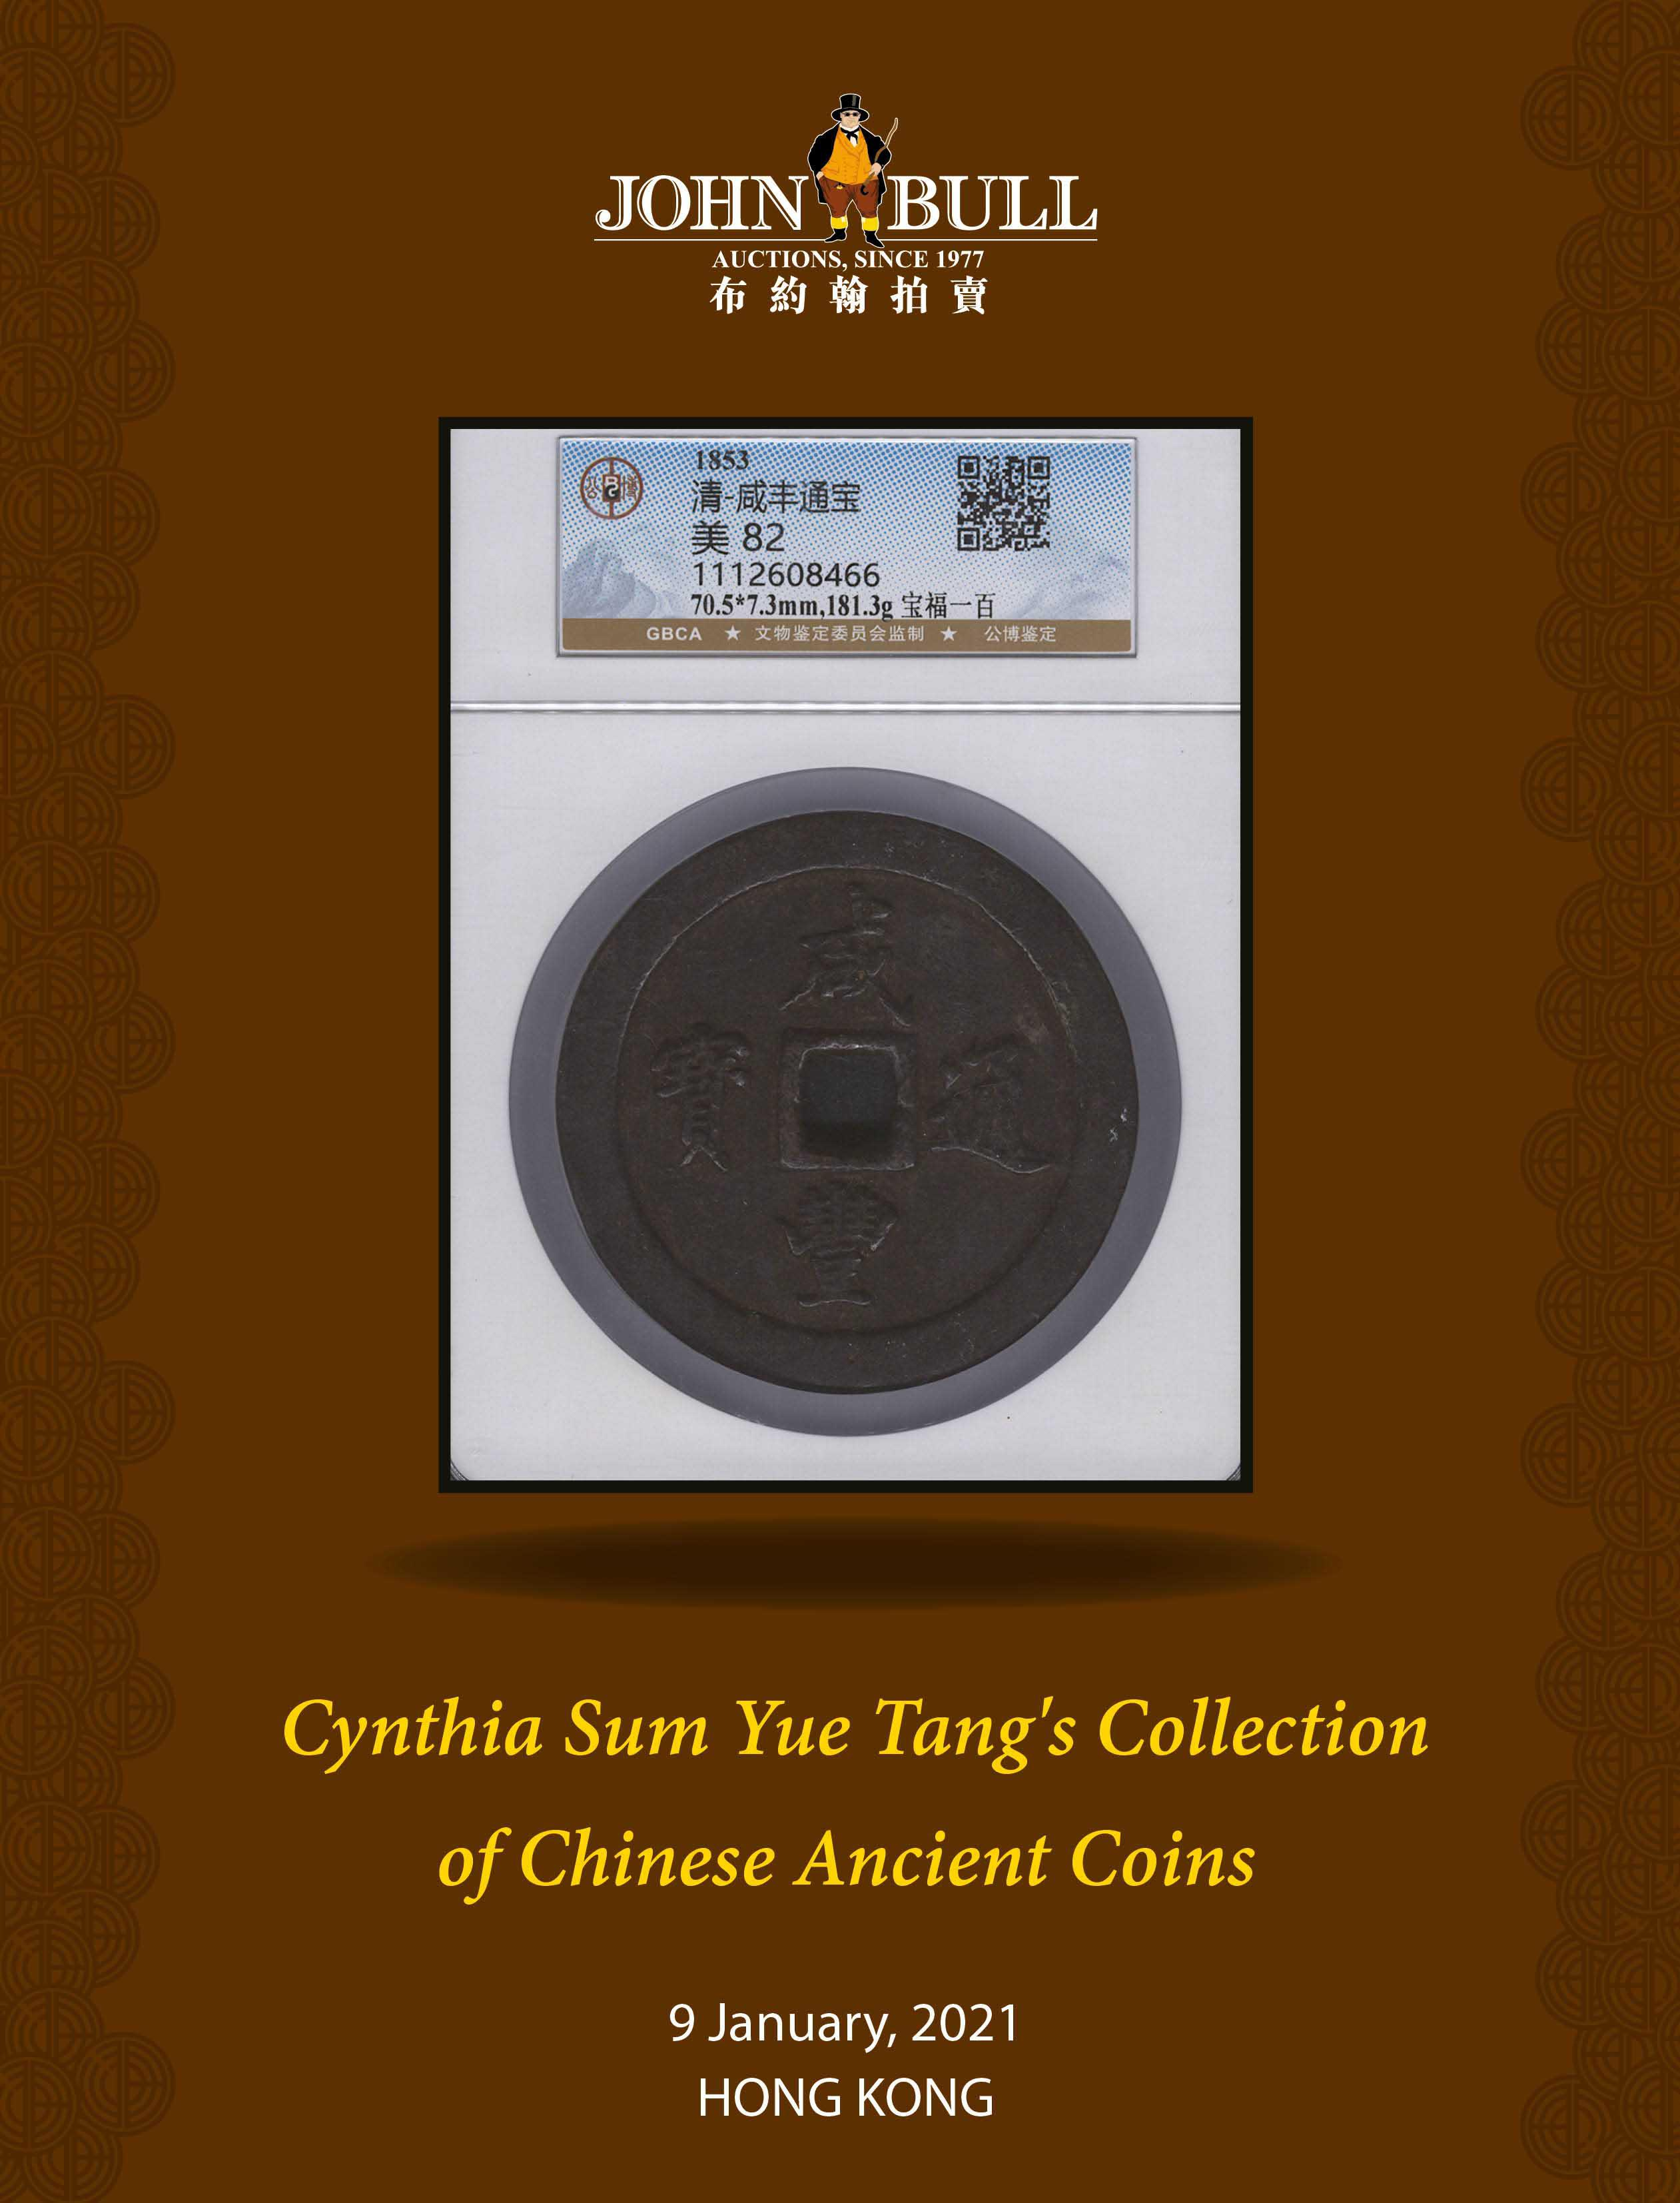 Cynthia Sum Yue Tang's Collection of Chinese Ancient Coins